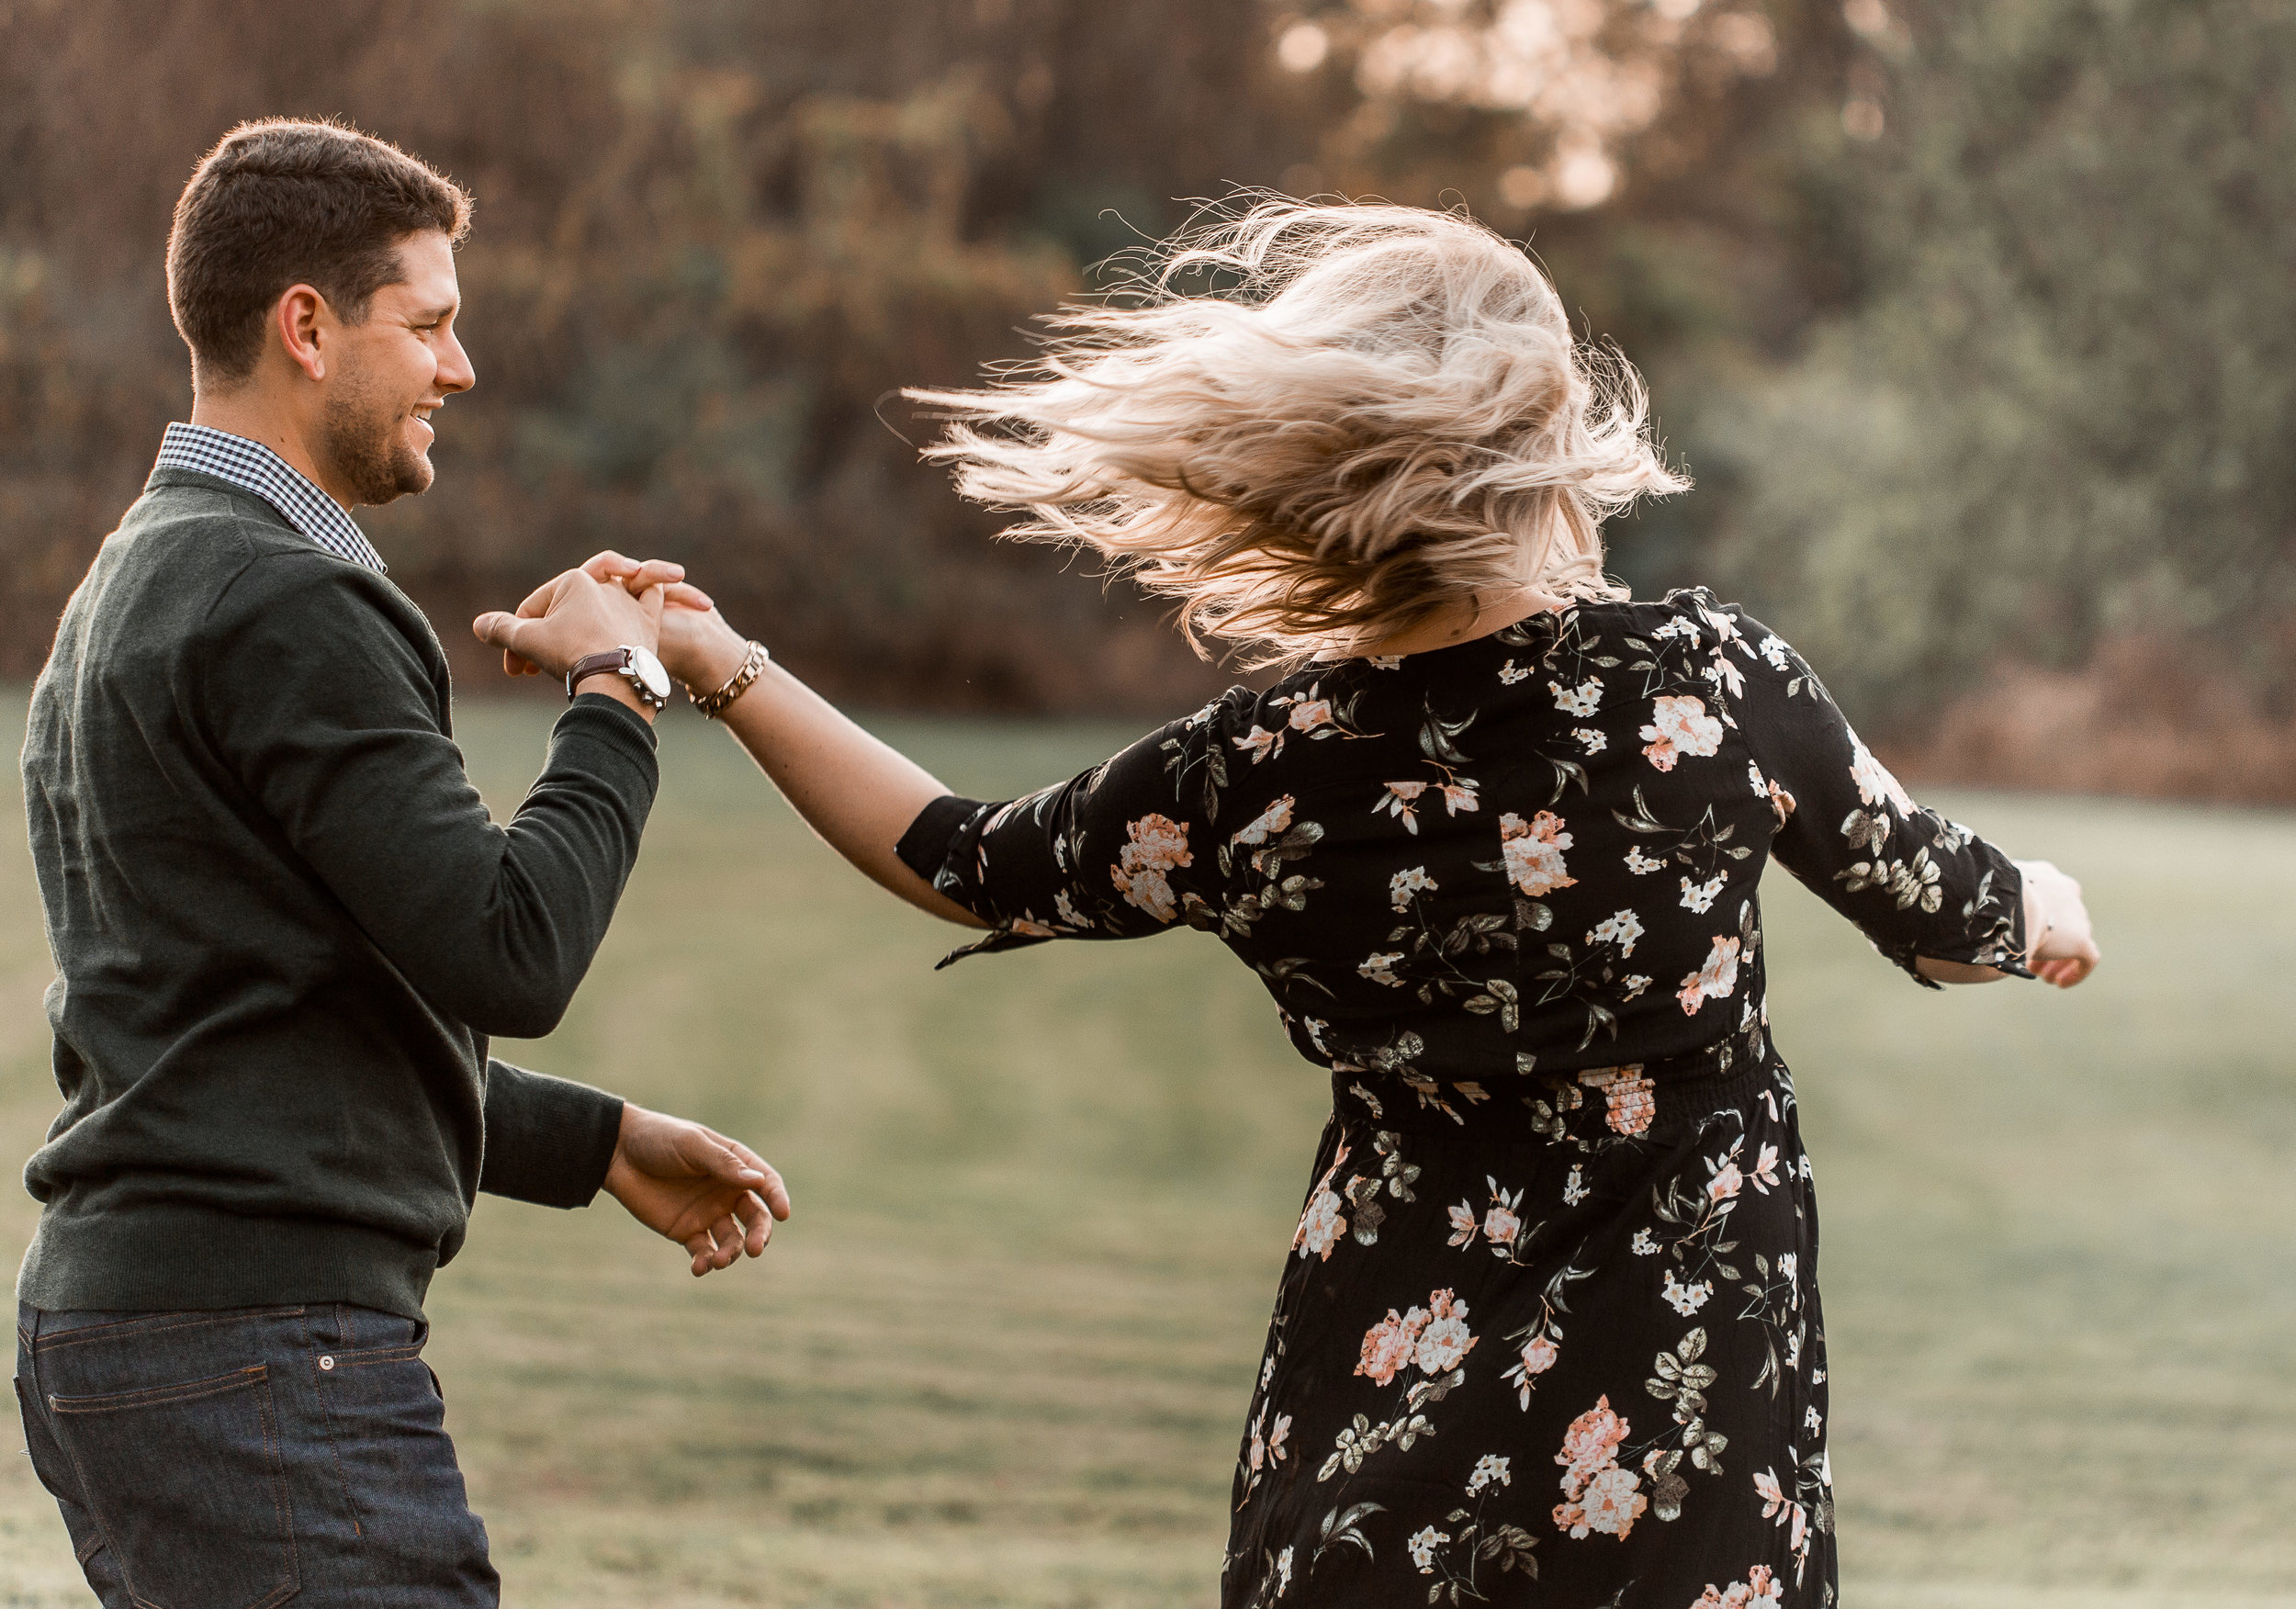 nicole-daacke-photography-carefree-bohemian-lancaster-pa-pennsylvania-engagement-photos-engagement-session-golden-sunset-adventure-session-in-lancaster-pa-lancaster-pa-outdoor-wedding-photographer-6.jpg